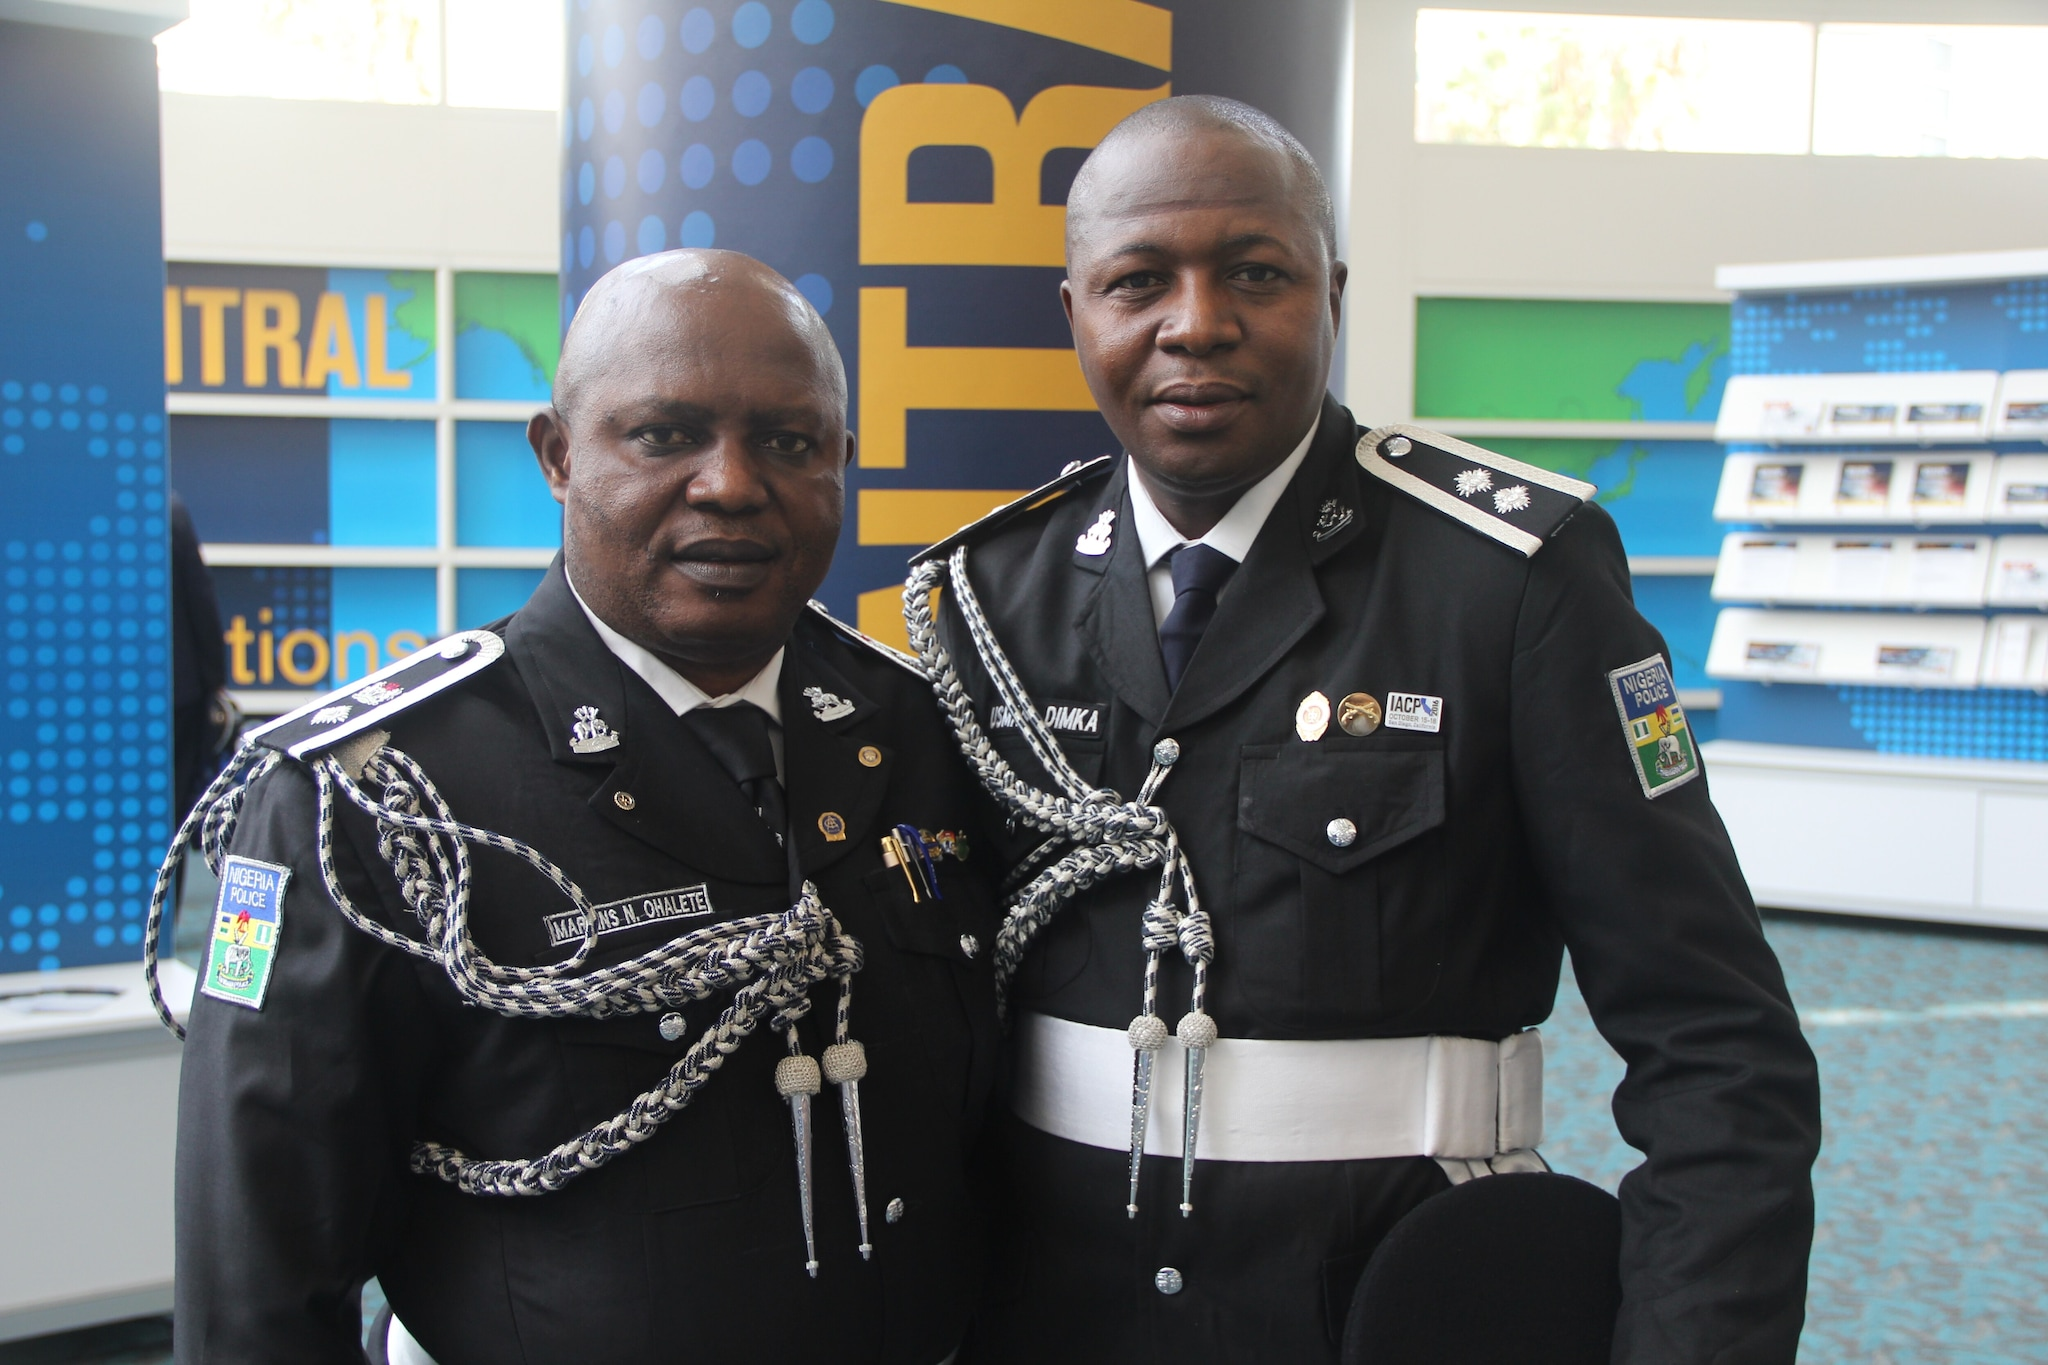 Two representatives from the Nigerian Police pose for a photo on Uniform Day during the National Association of Police Chiefs annual convention in San Diego Oct. 15-18, 2015. (Photo: Jared Morgan / Guns.com)